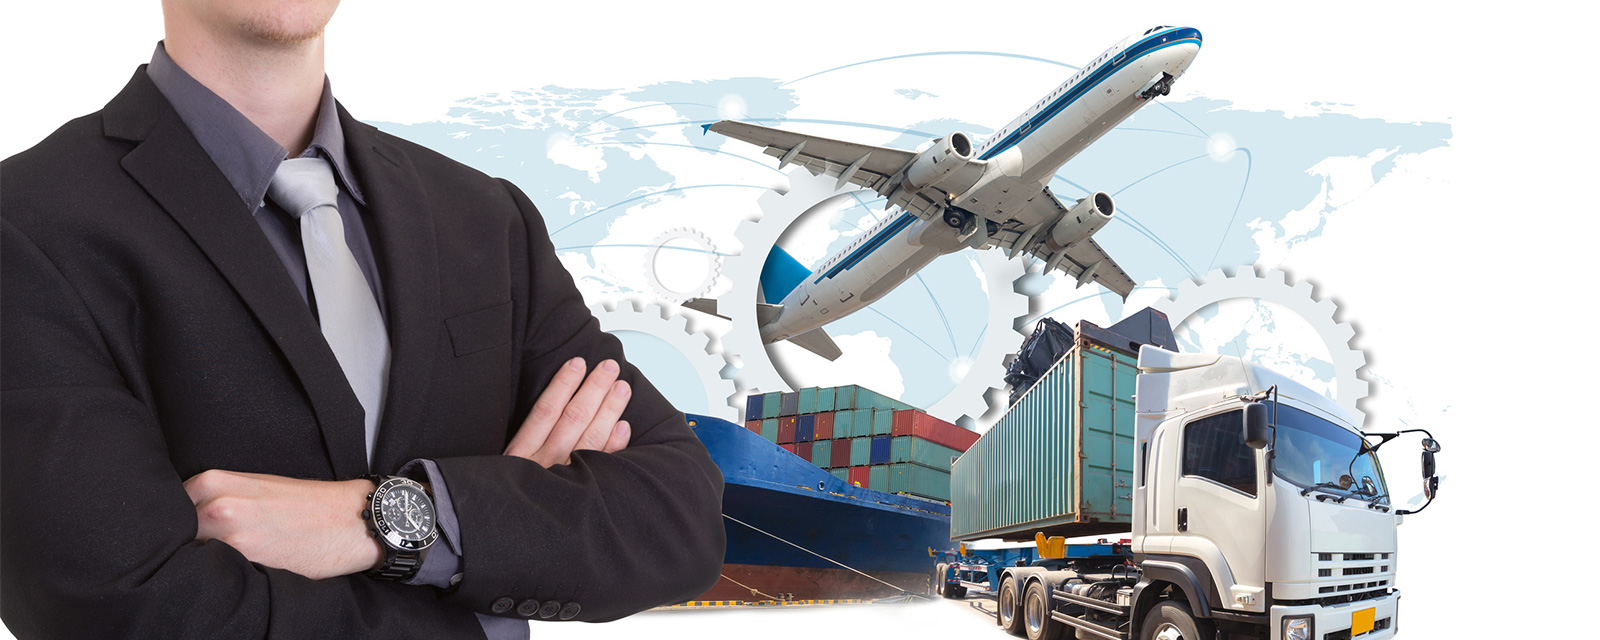 Logistikmanagement_Fotolia_113672713_kamonrat_1600